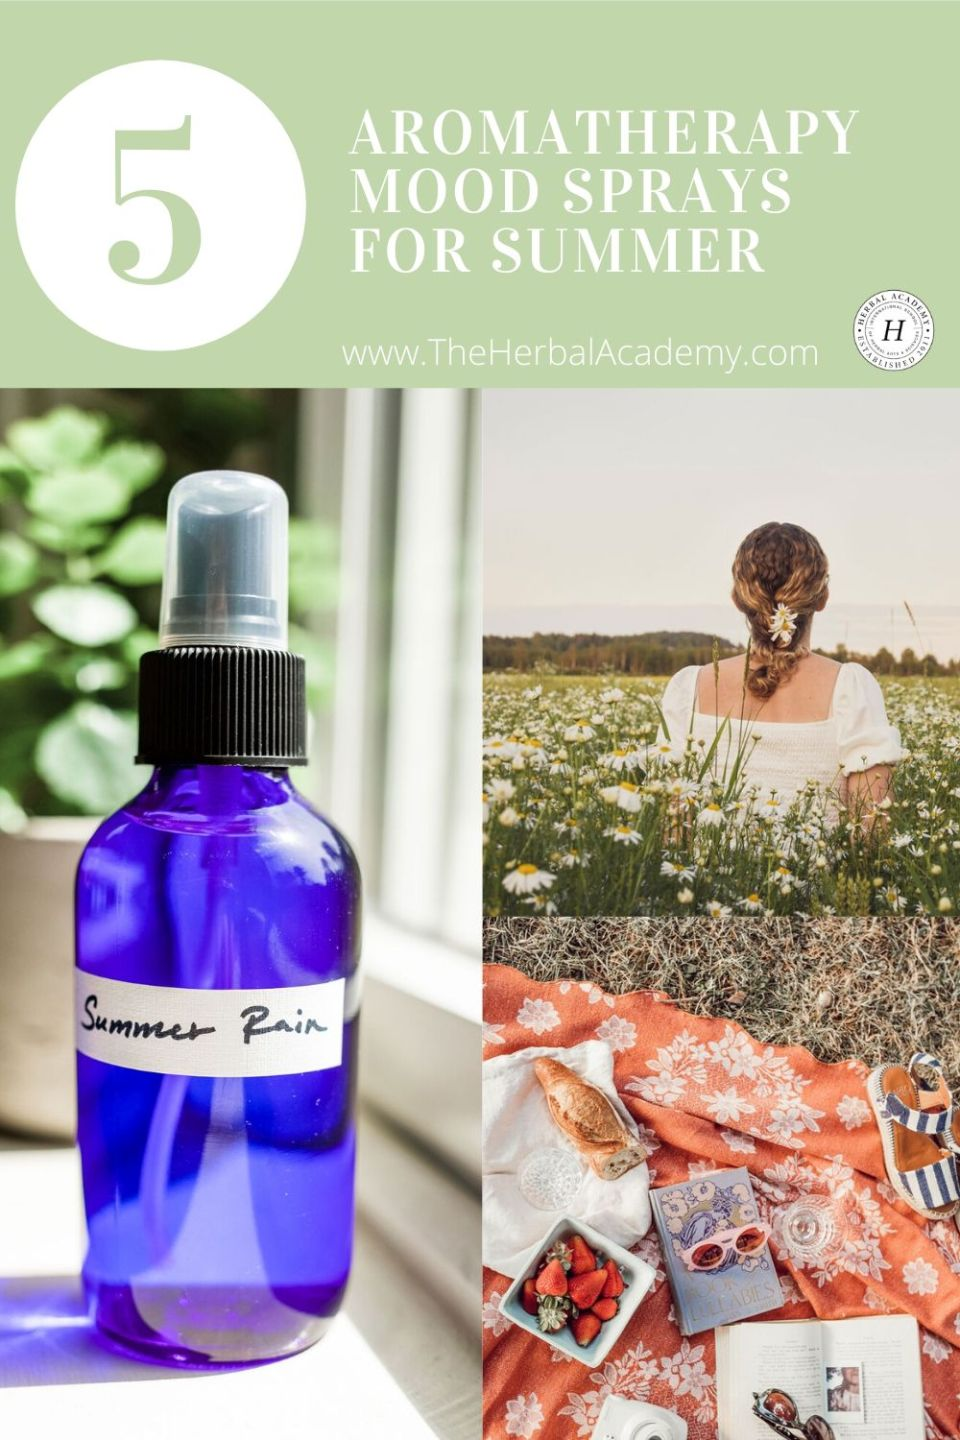 5 Aromatherapy Mood Sprays for Summer | The Herbal Academy | An aromatherapy mood spray is easy to make and use. When made in small batches, each batch can feature a scent that kindles a different memory or feeling.